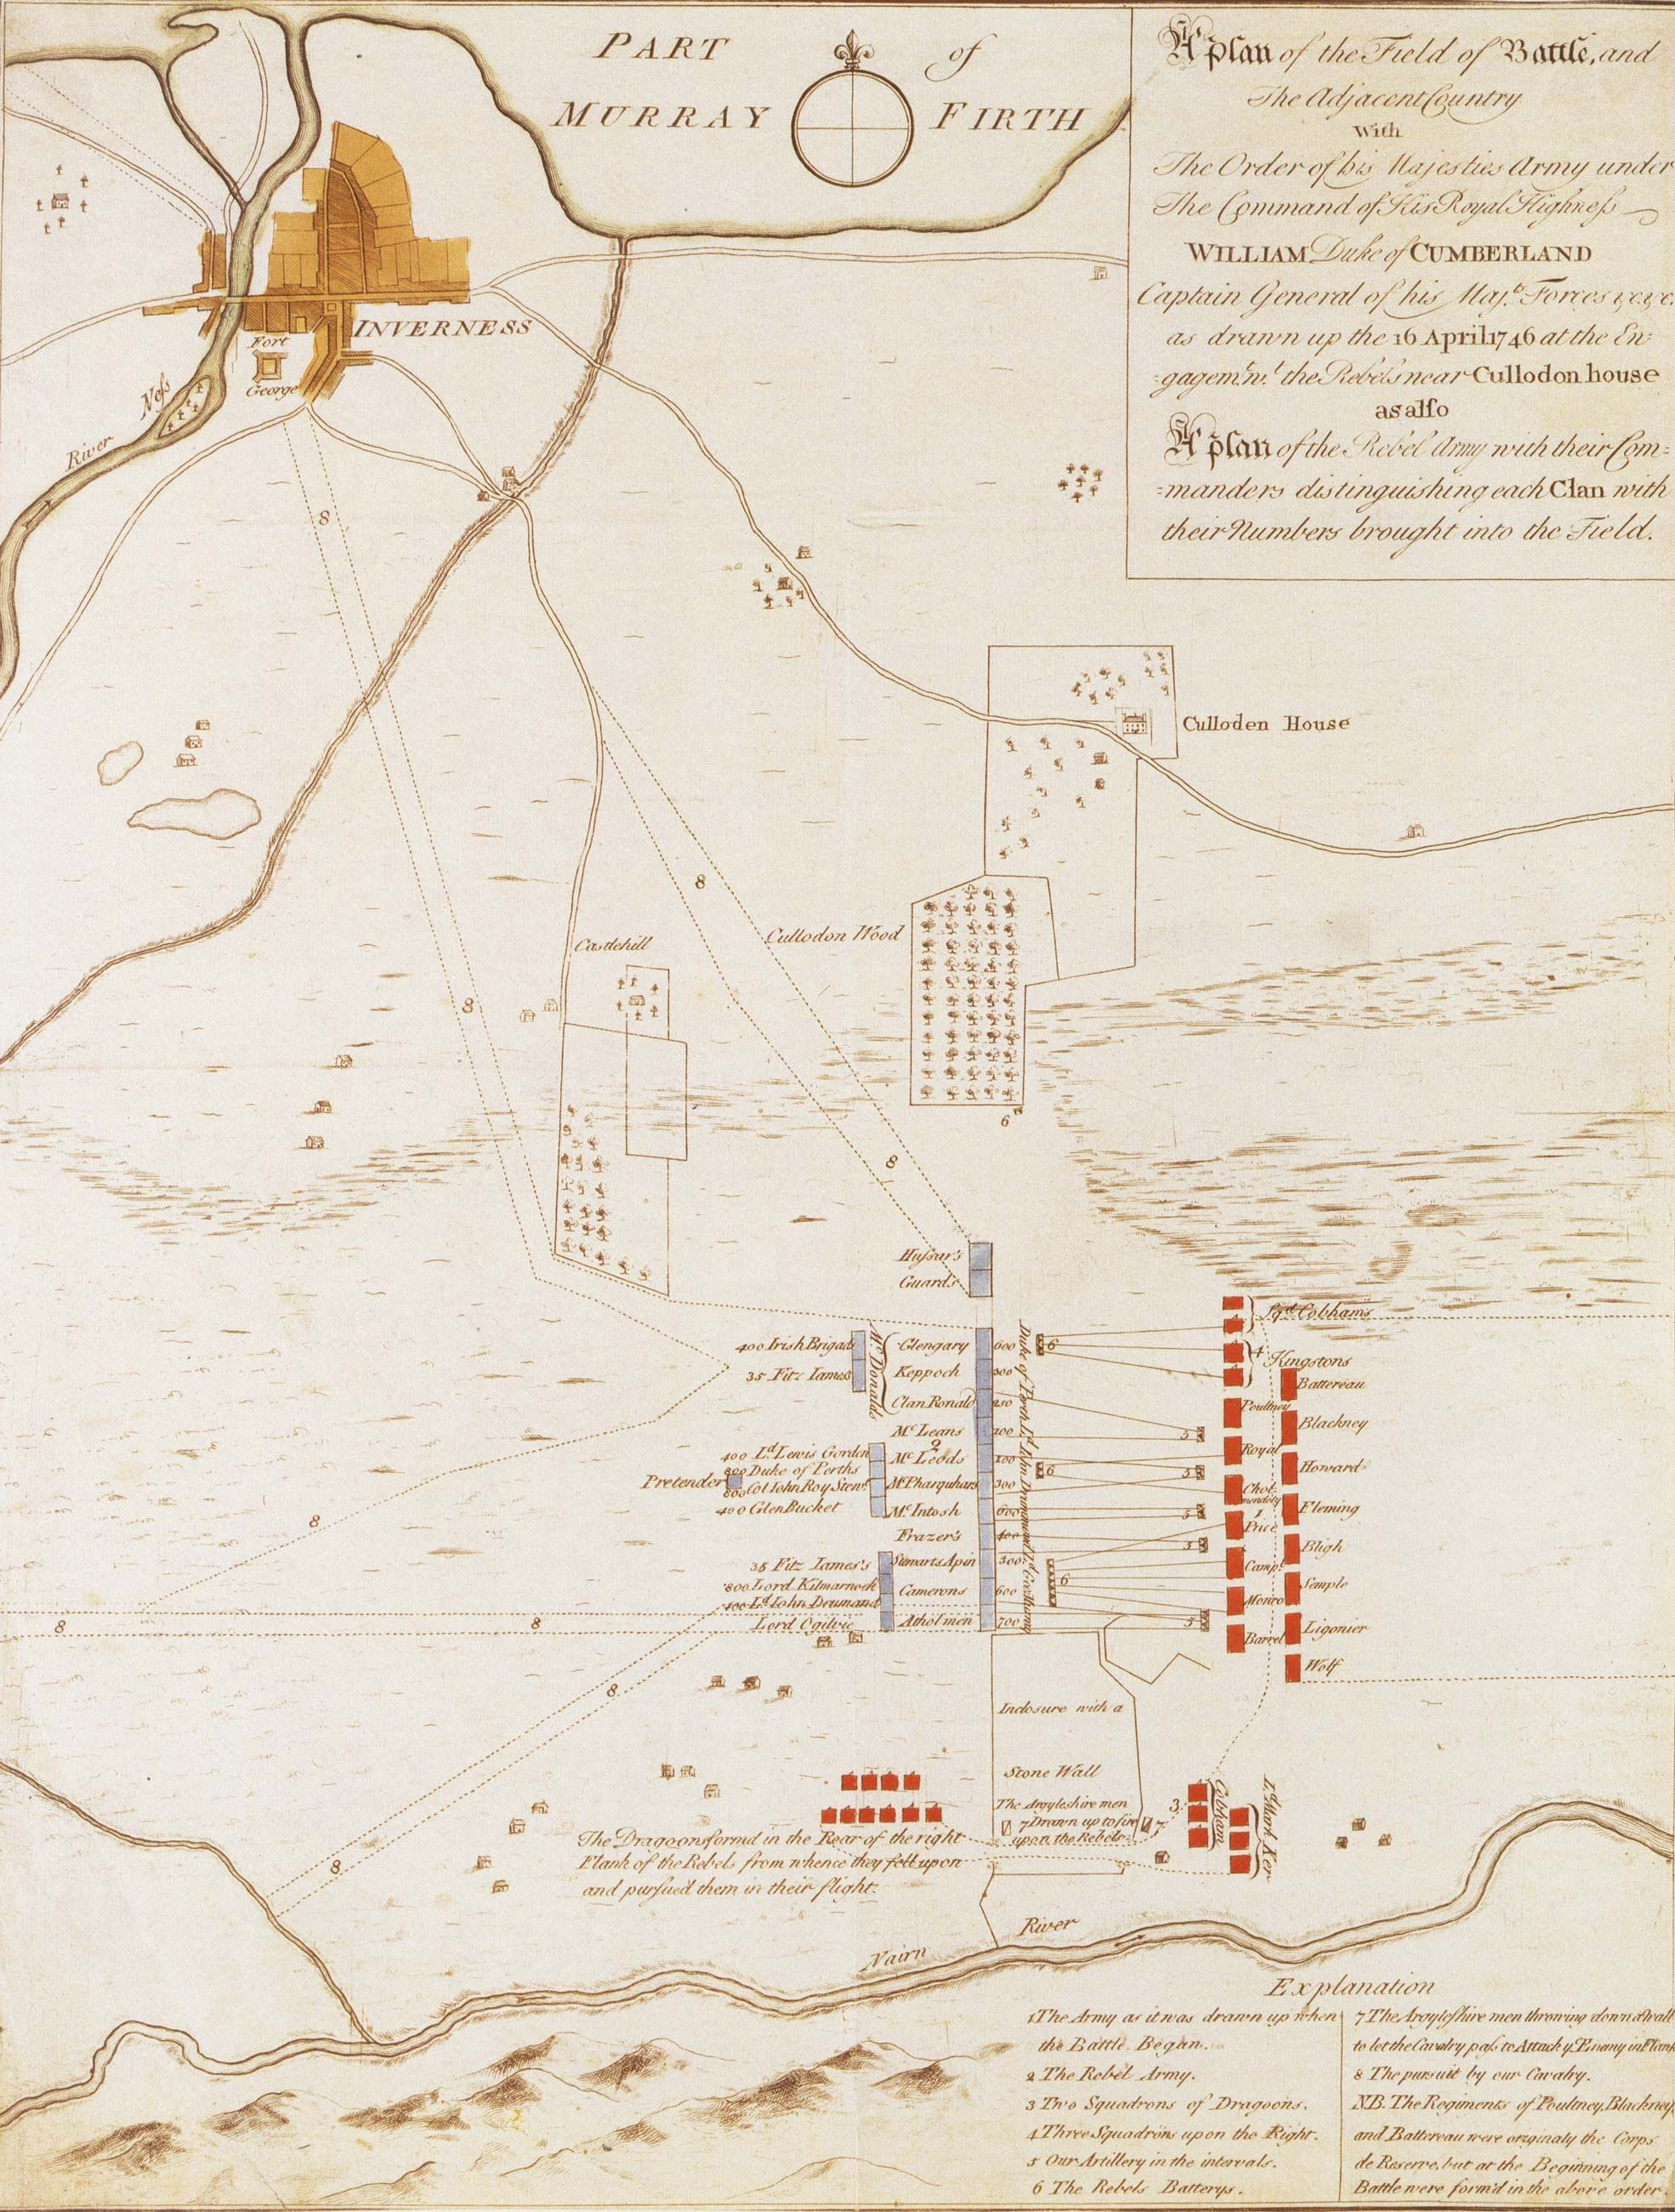 Fonte: Anonimo, A Plan of the Field and The Adjacent Country with the Order of his Majesties Army under the Command of His Royal Highness William Duke of Cumberland as drawn up on the 16 April 1746 at the Engagement with the Rebels near Culloden House, Edinburgh 1746 circa.